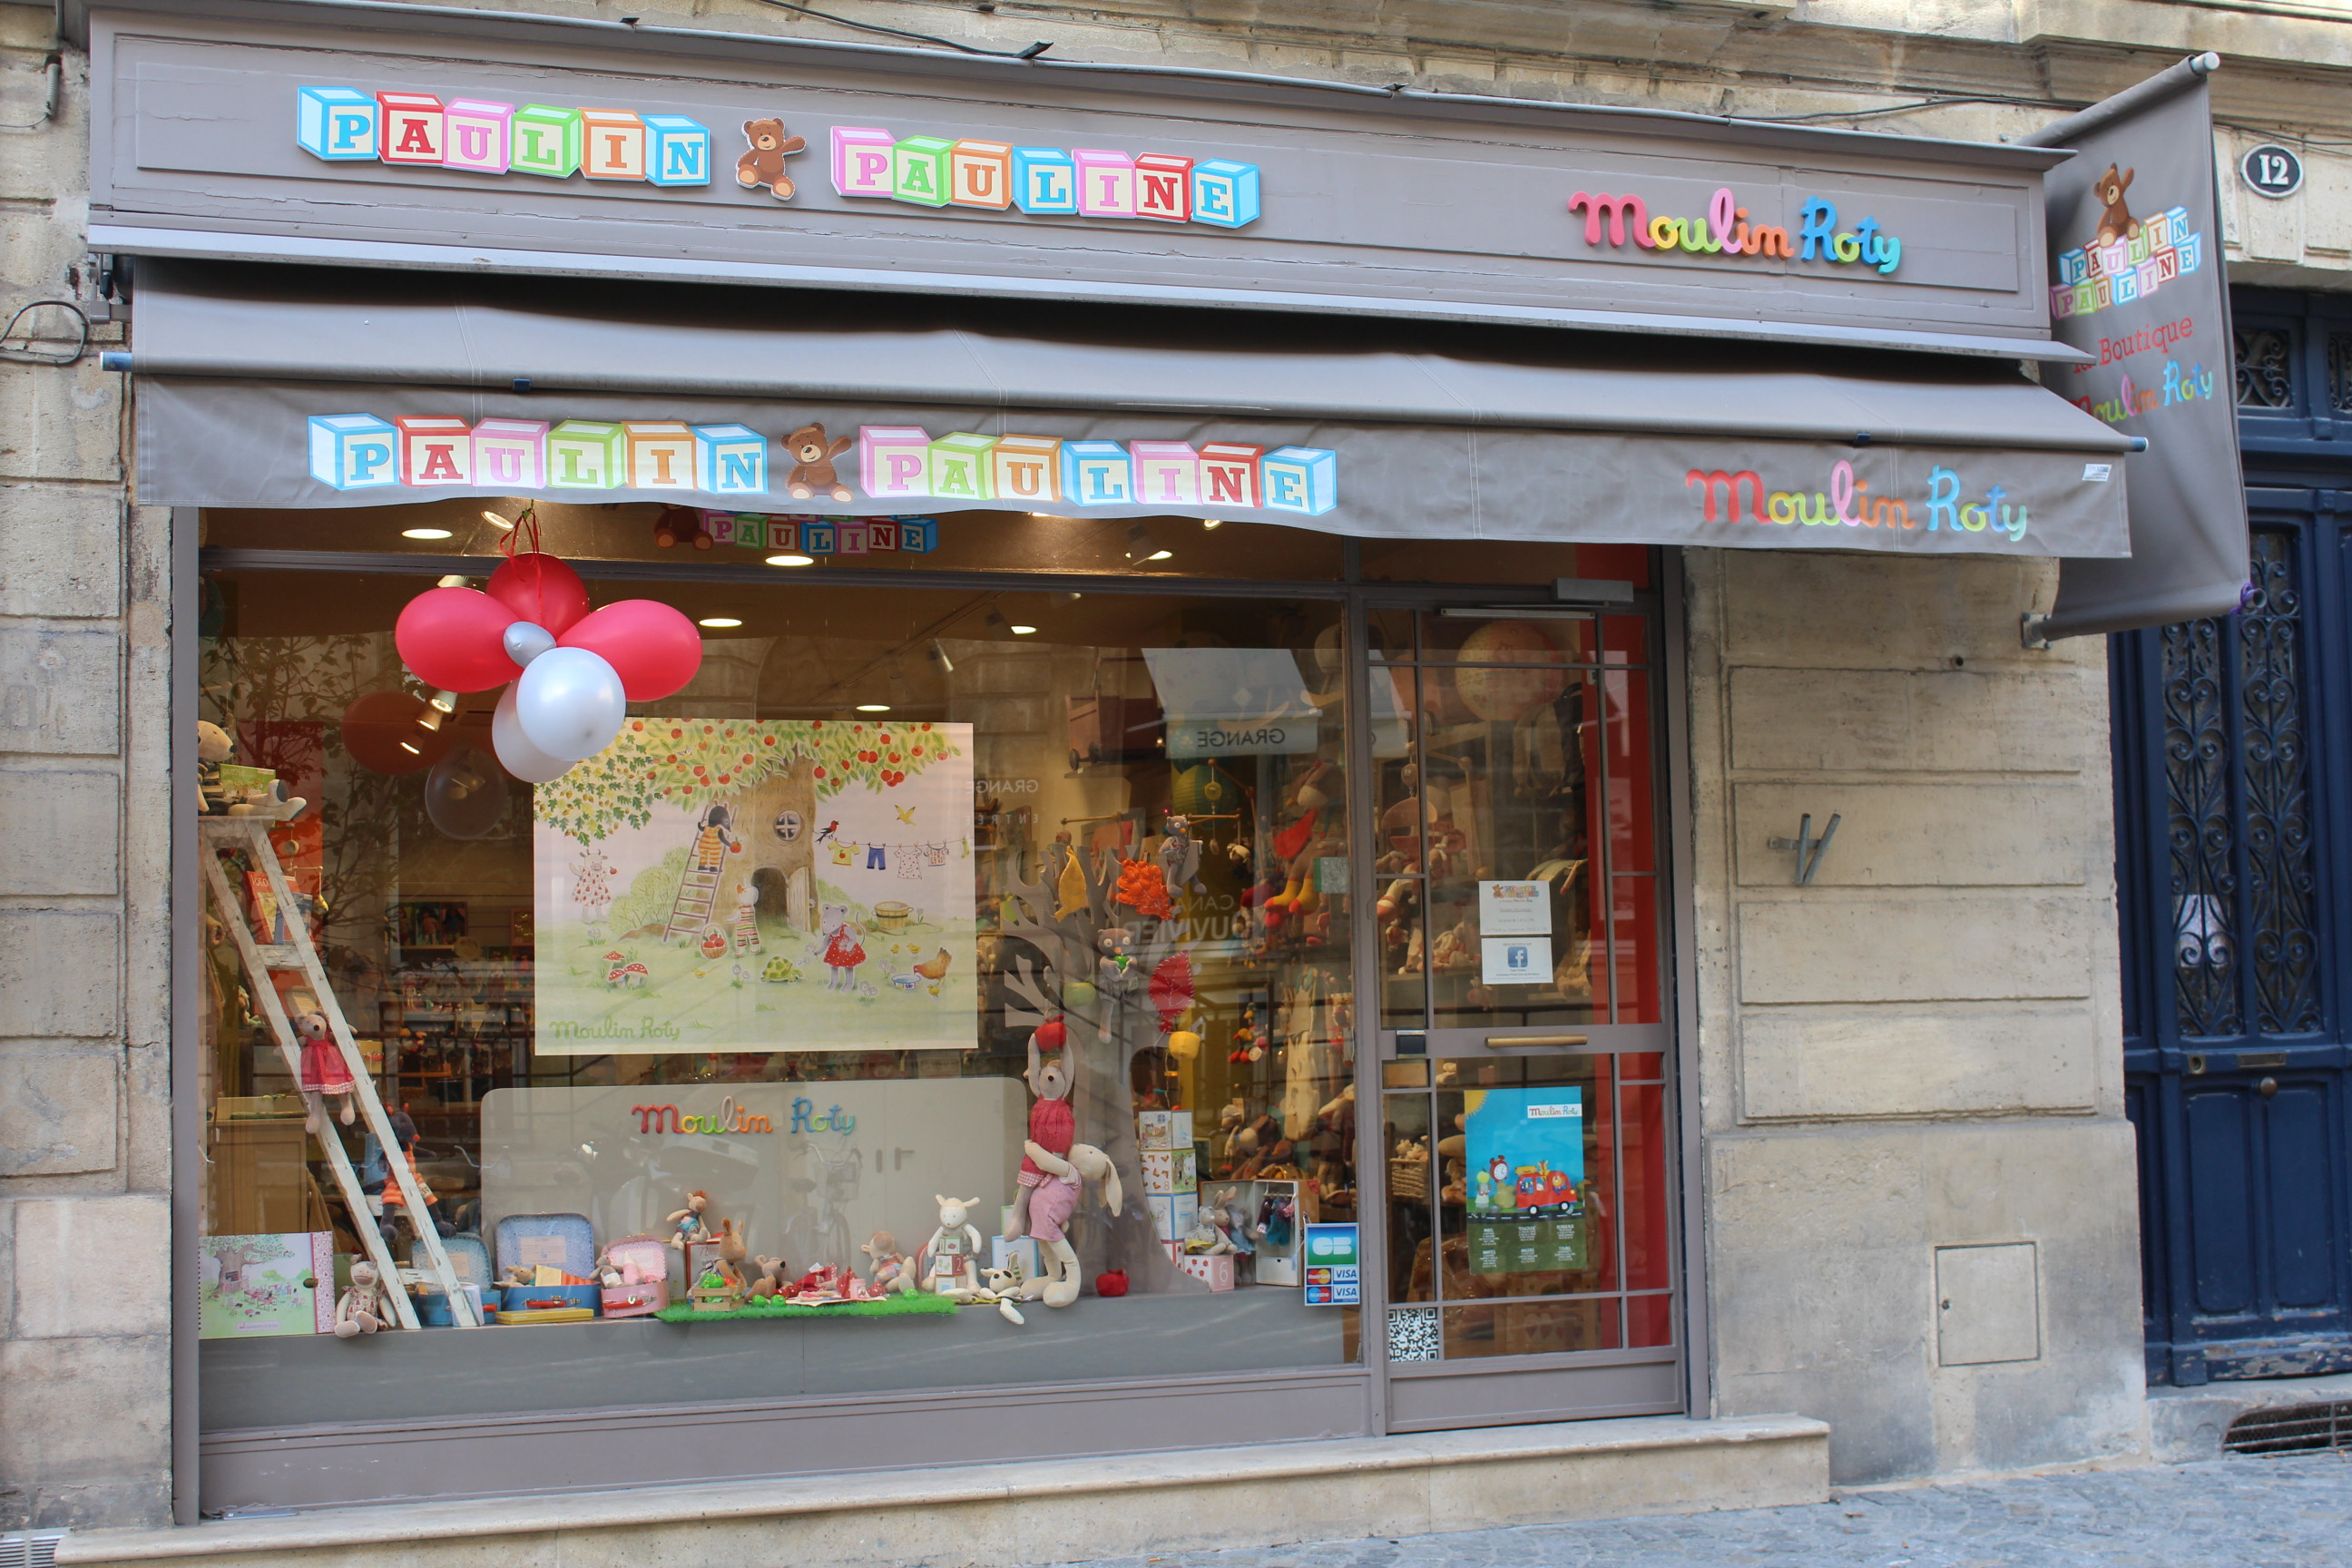 paulin pauline la boutique de jouets moulin roty au coeur de bordeaux. Black Bedroom Furniture Sets. Home Design Ideas